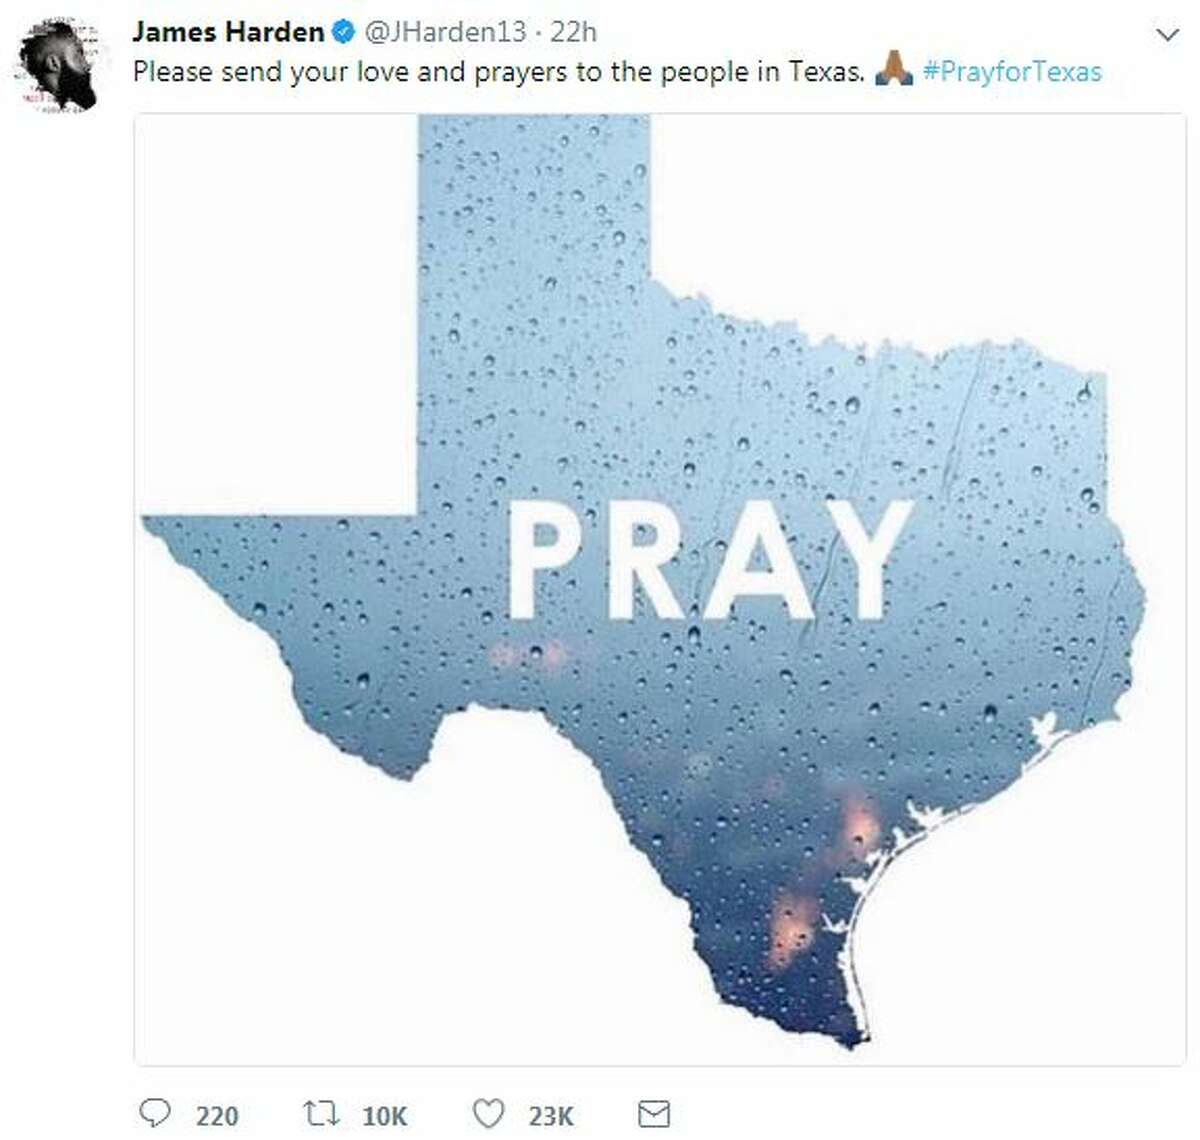 @JHarden13: Please send your love and prayers to the people in Texas. #PrayforTexas